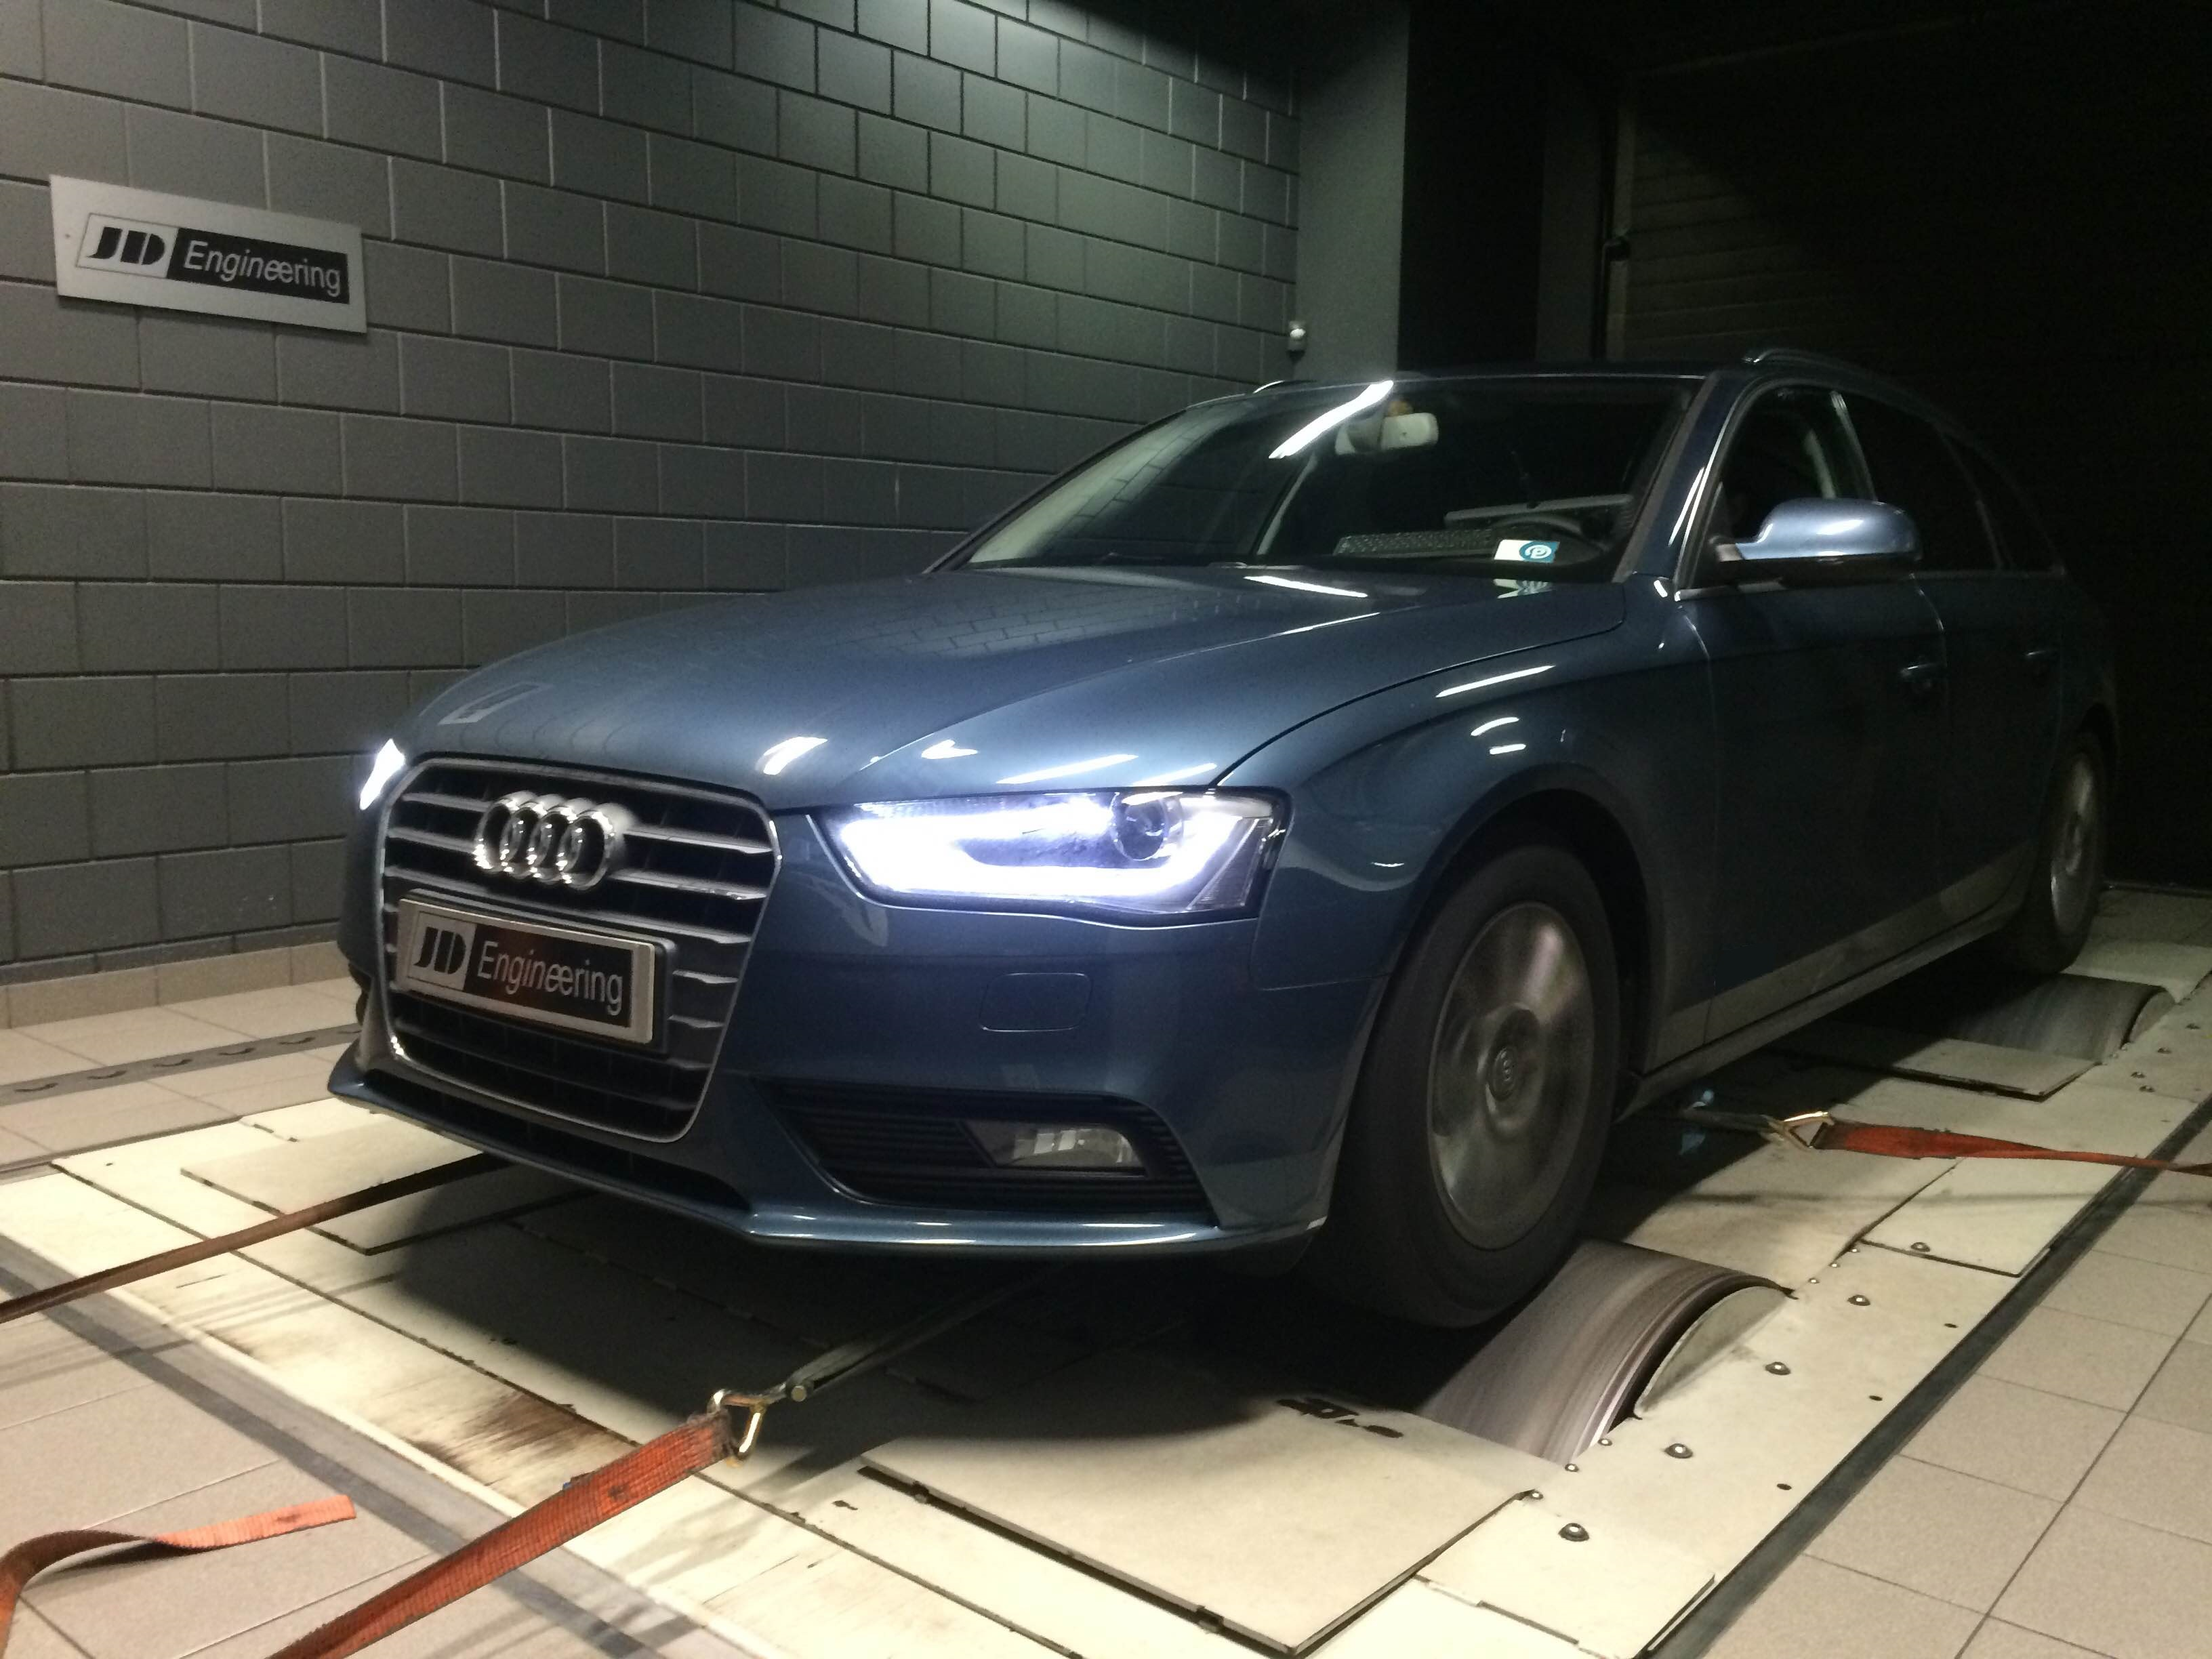 Audi a4 2.0 tdi 136pk CR ultra jd